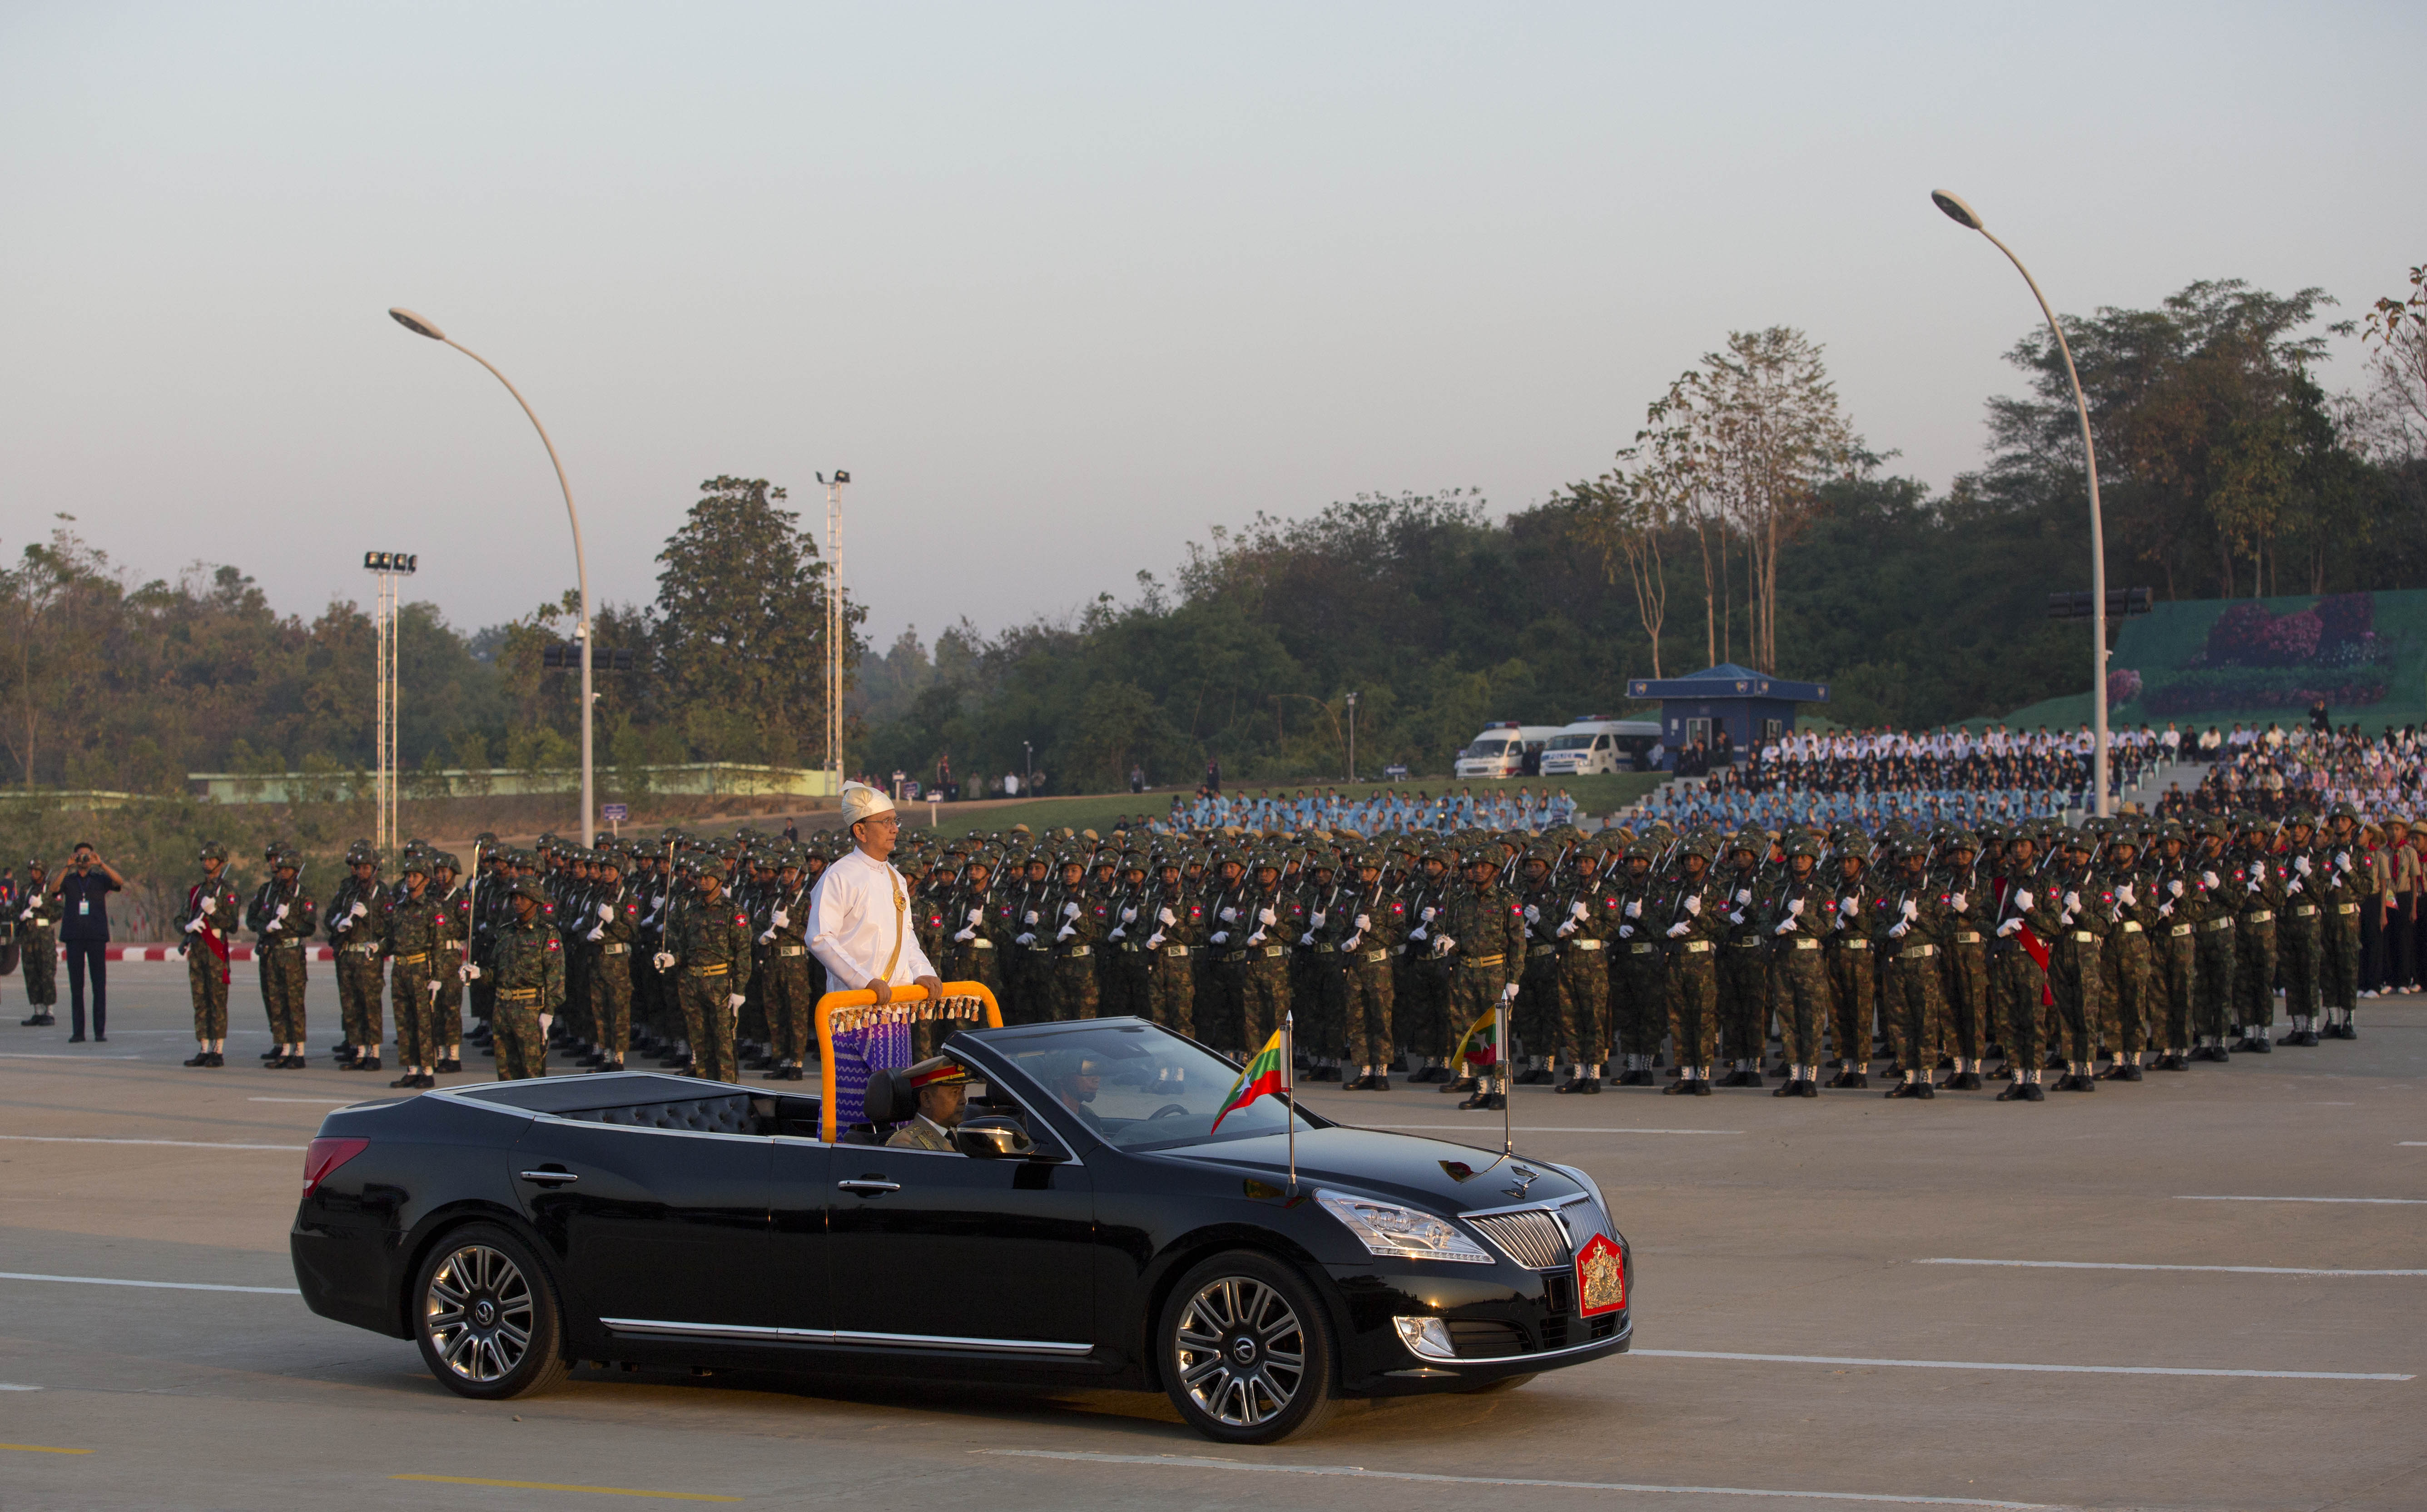 Myanmar's President Thein Sein, standing in an open vehicle, inspect officers and soldiers during a ceremony to mark the 67th anniversary of Independence Day in Naypyitaw, Jan. 4, 2015.